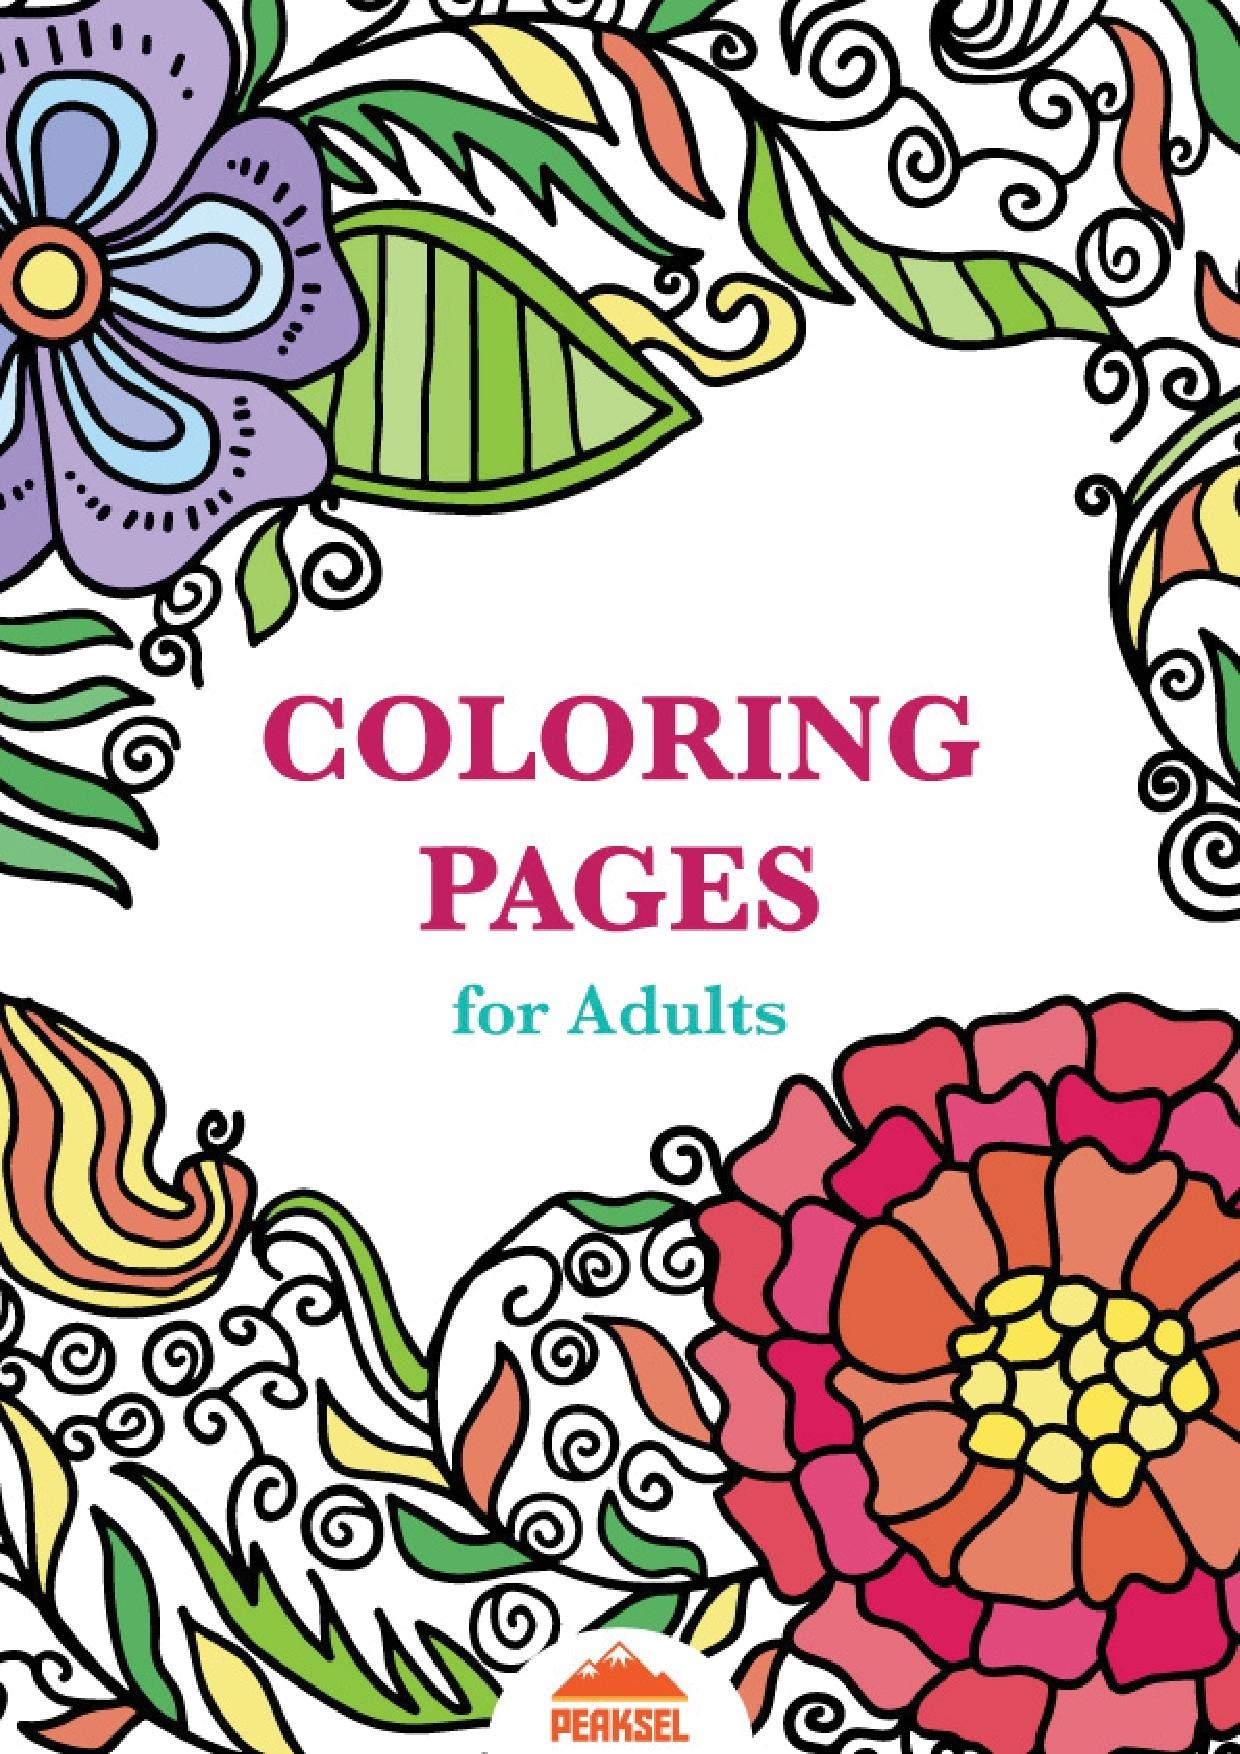 File:printable Coloring Pages For Adults - Free Adult Coloring Book - Free Printable Coloring Pages For Adults Pdf